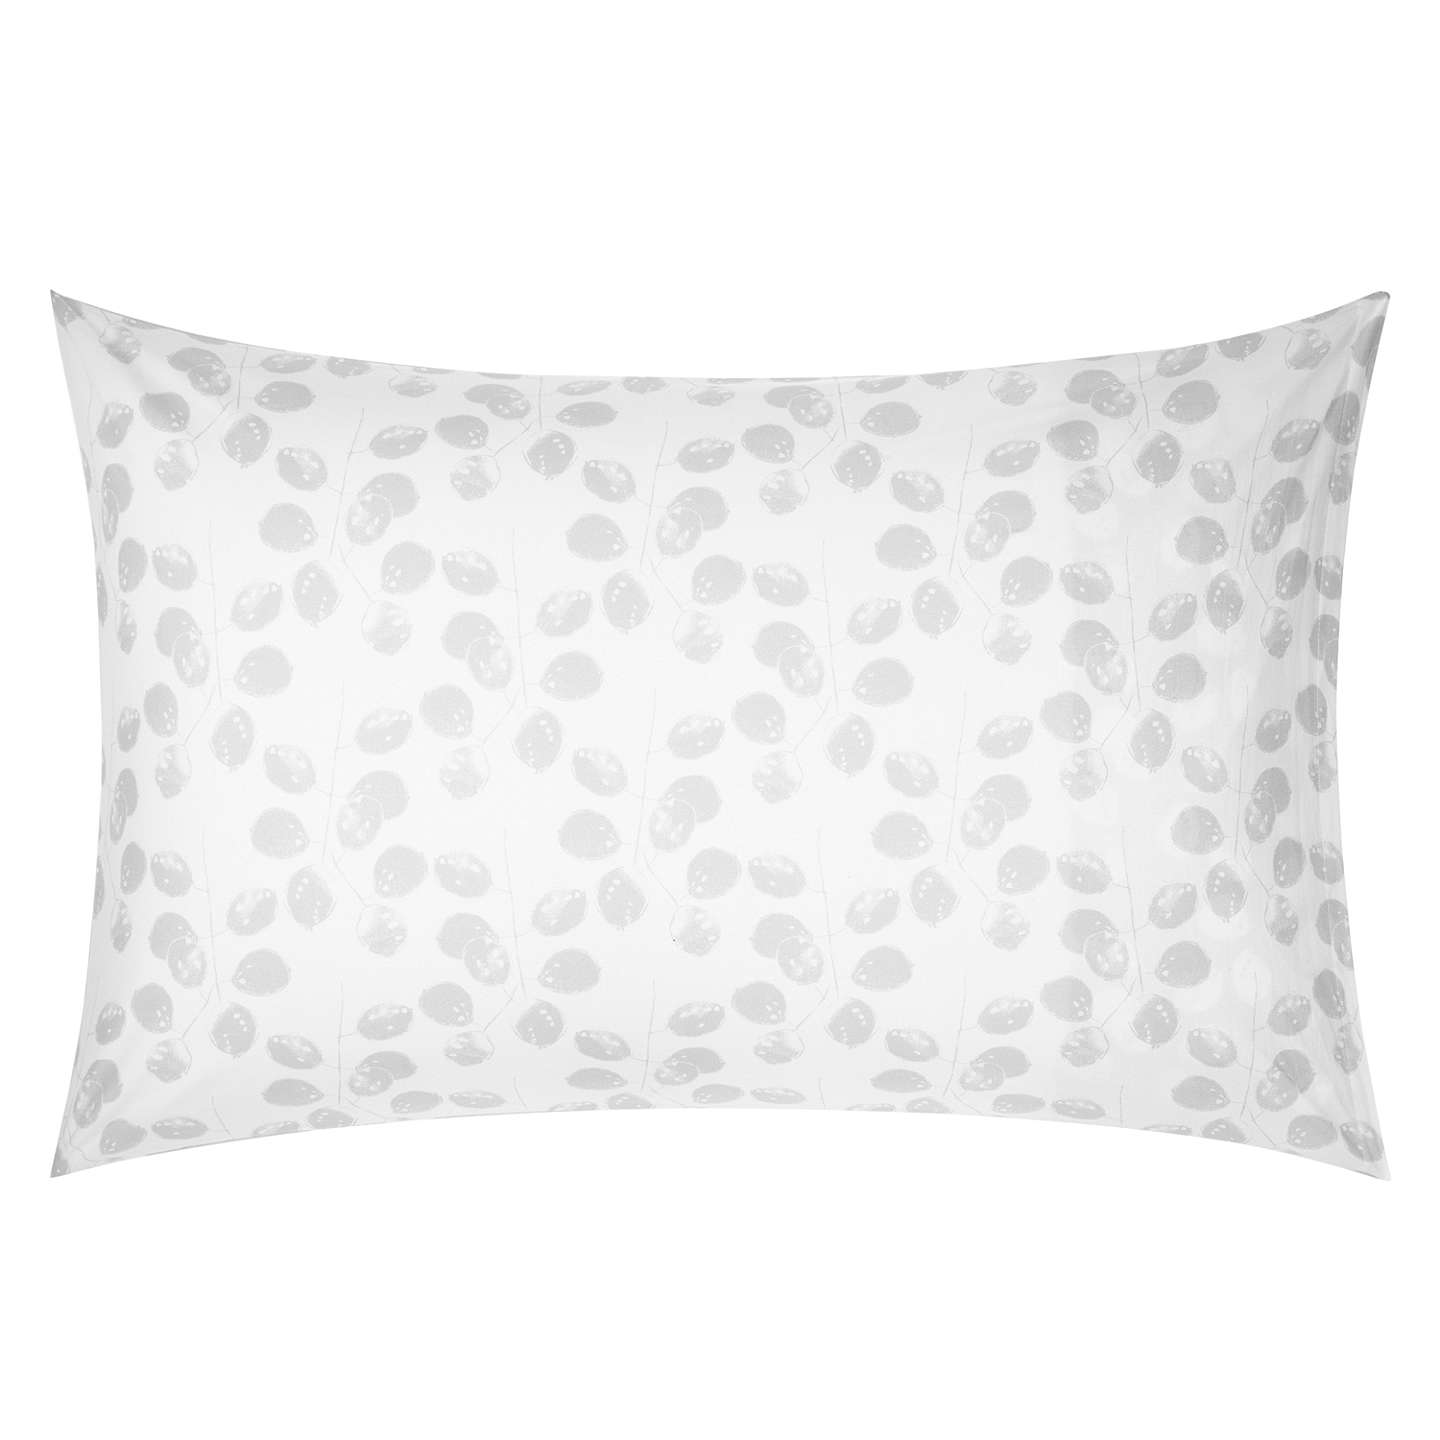 BuyCroft Collection Honesty Cotton Standard Pillowcase Online at johnlewis.com